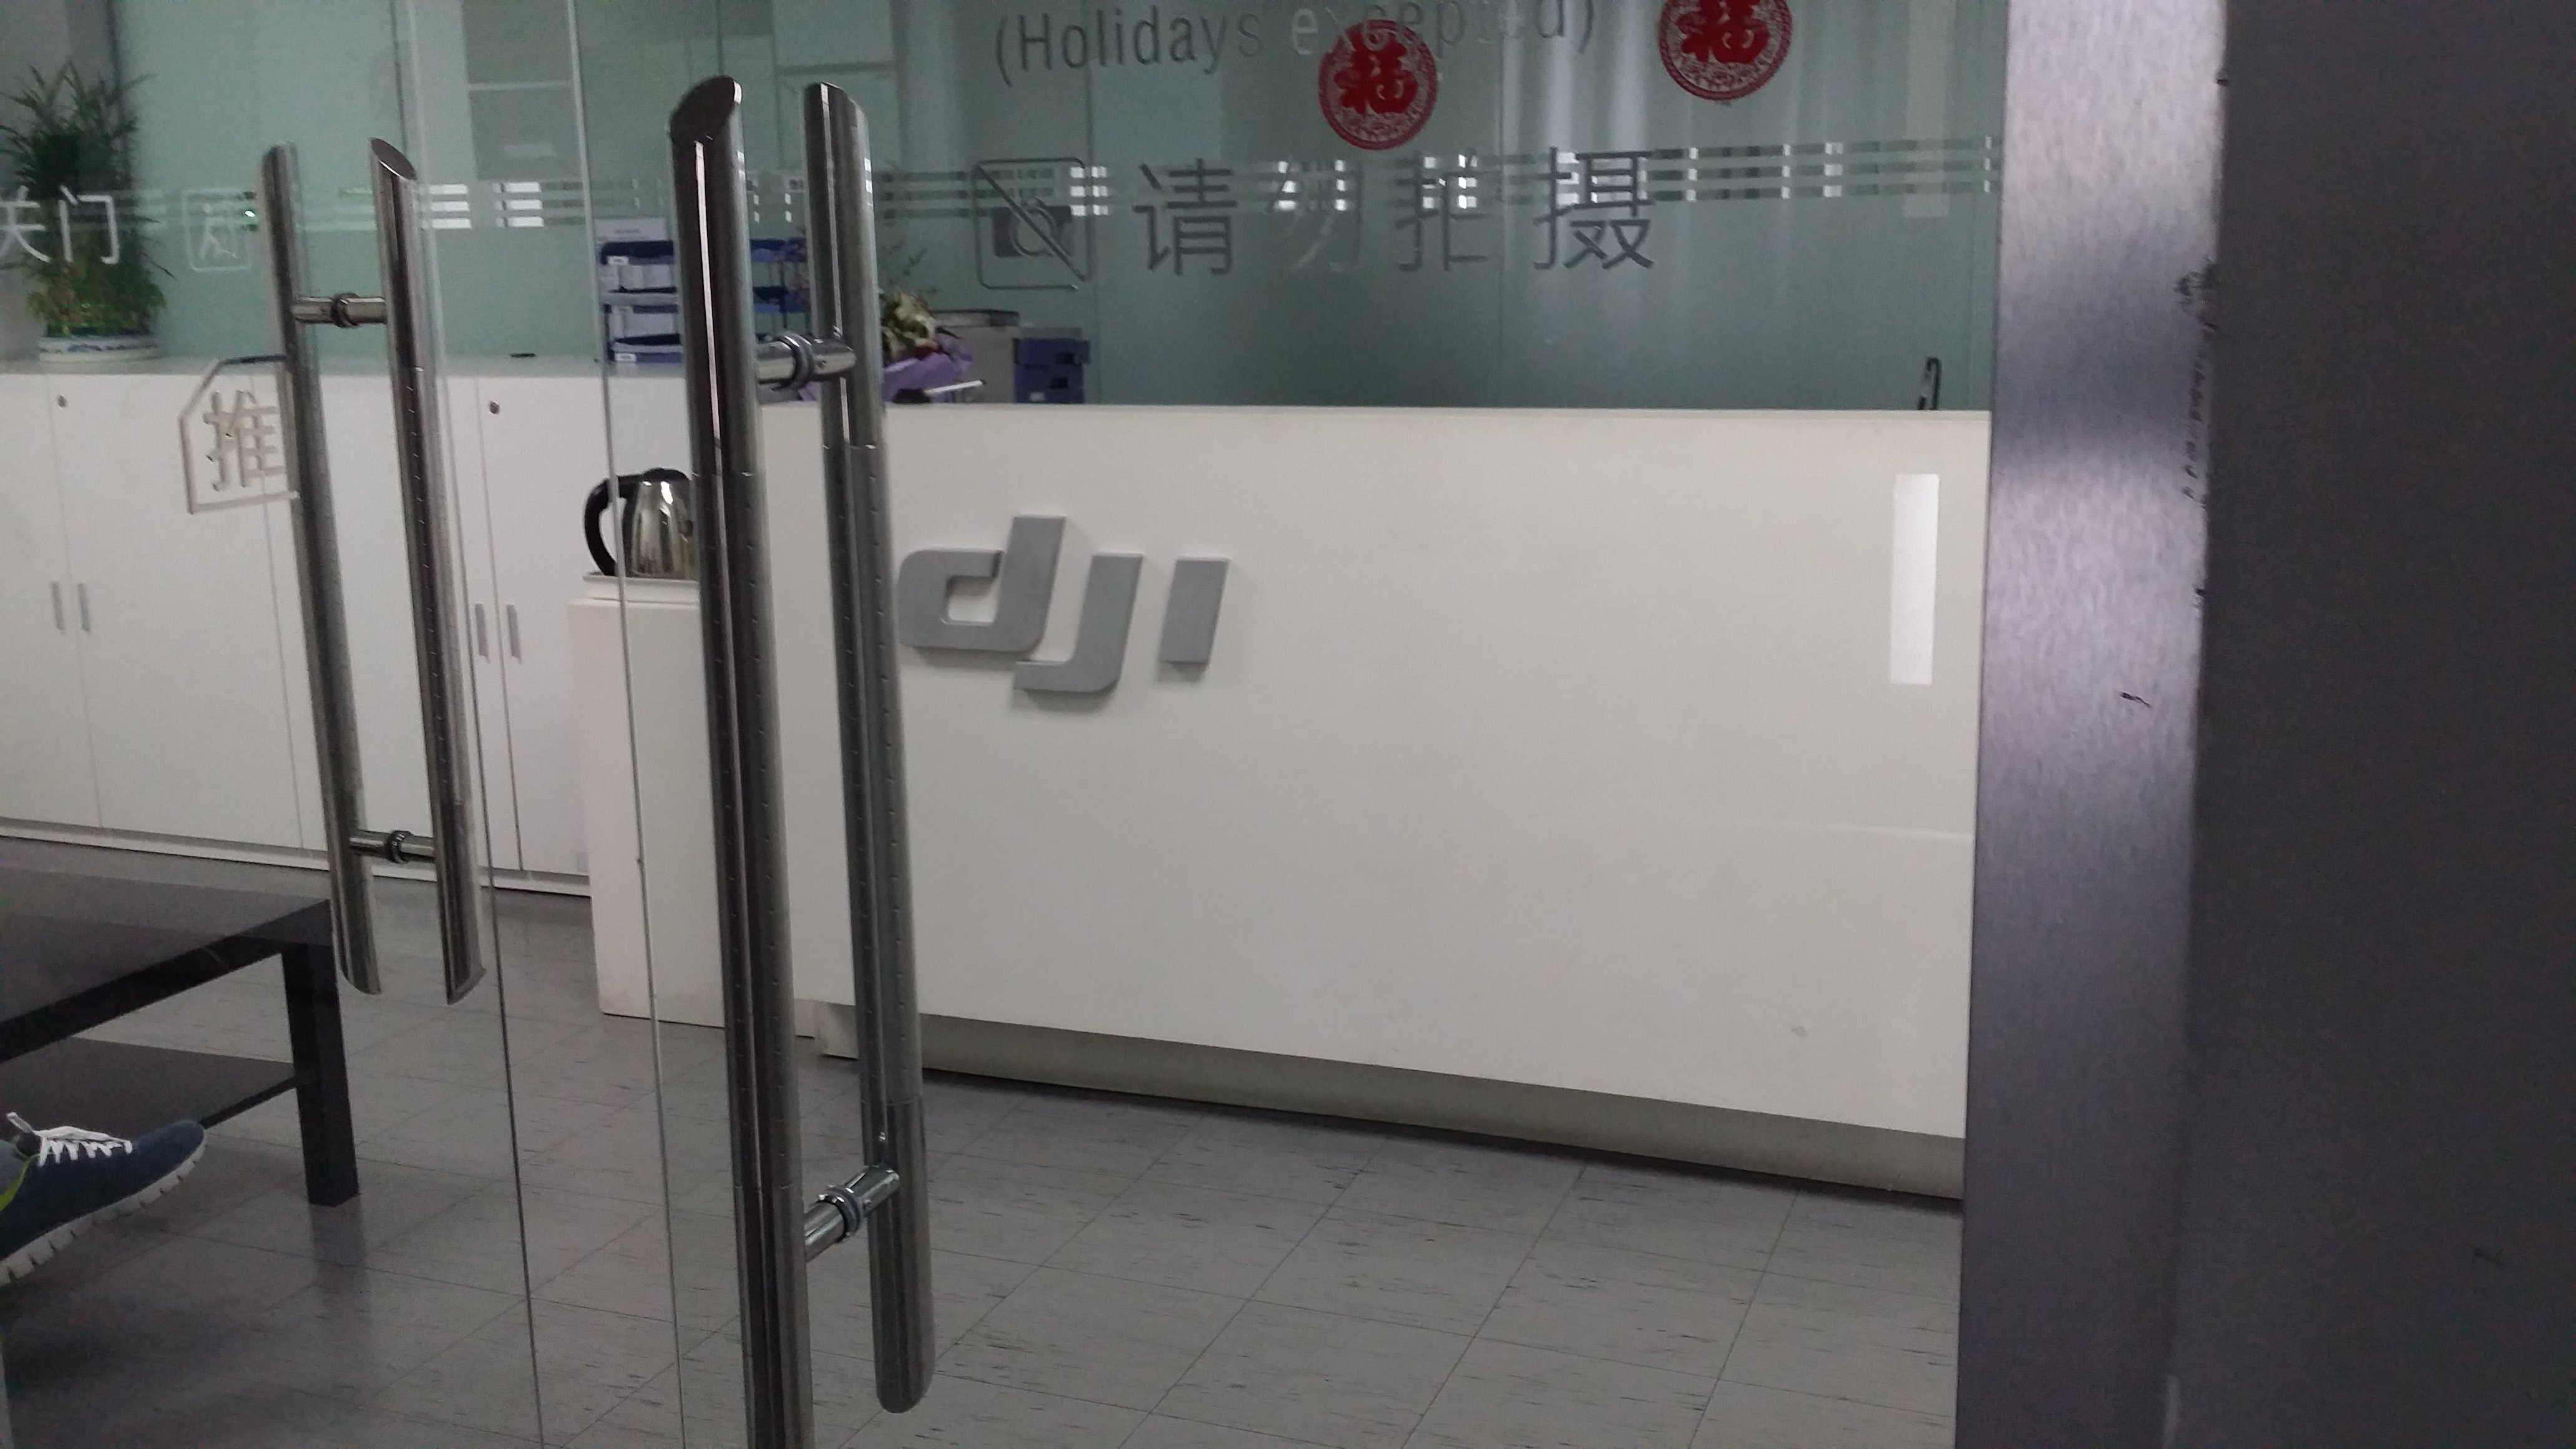 DJI Reception in Hong Kong University, Shenzhen